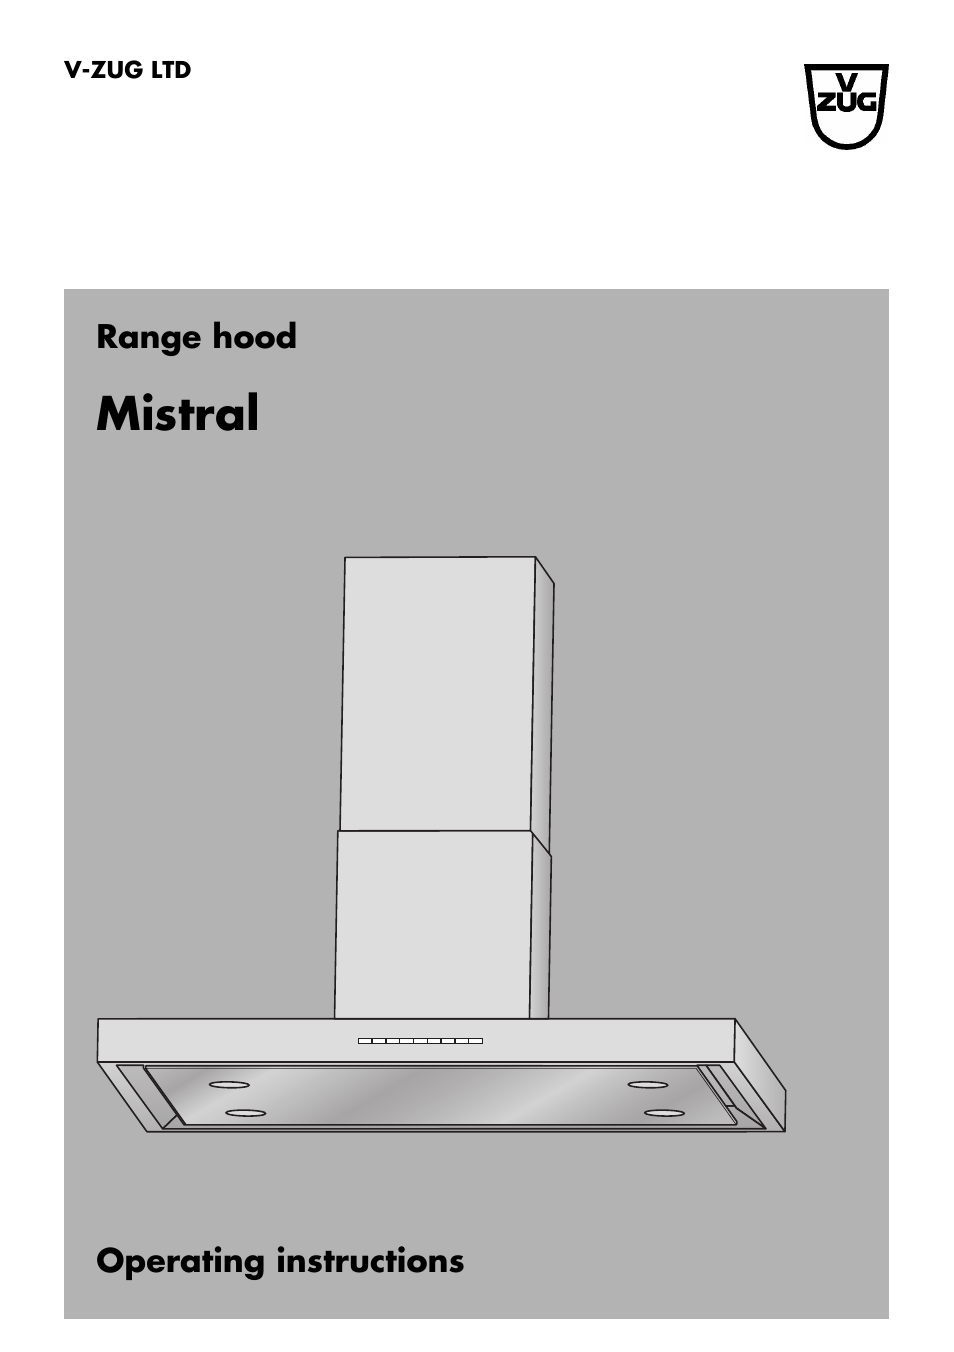 Description and instructions for use: Mistral